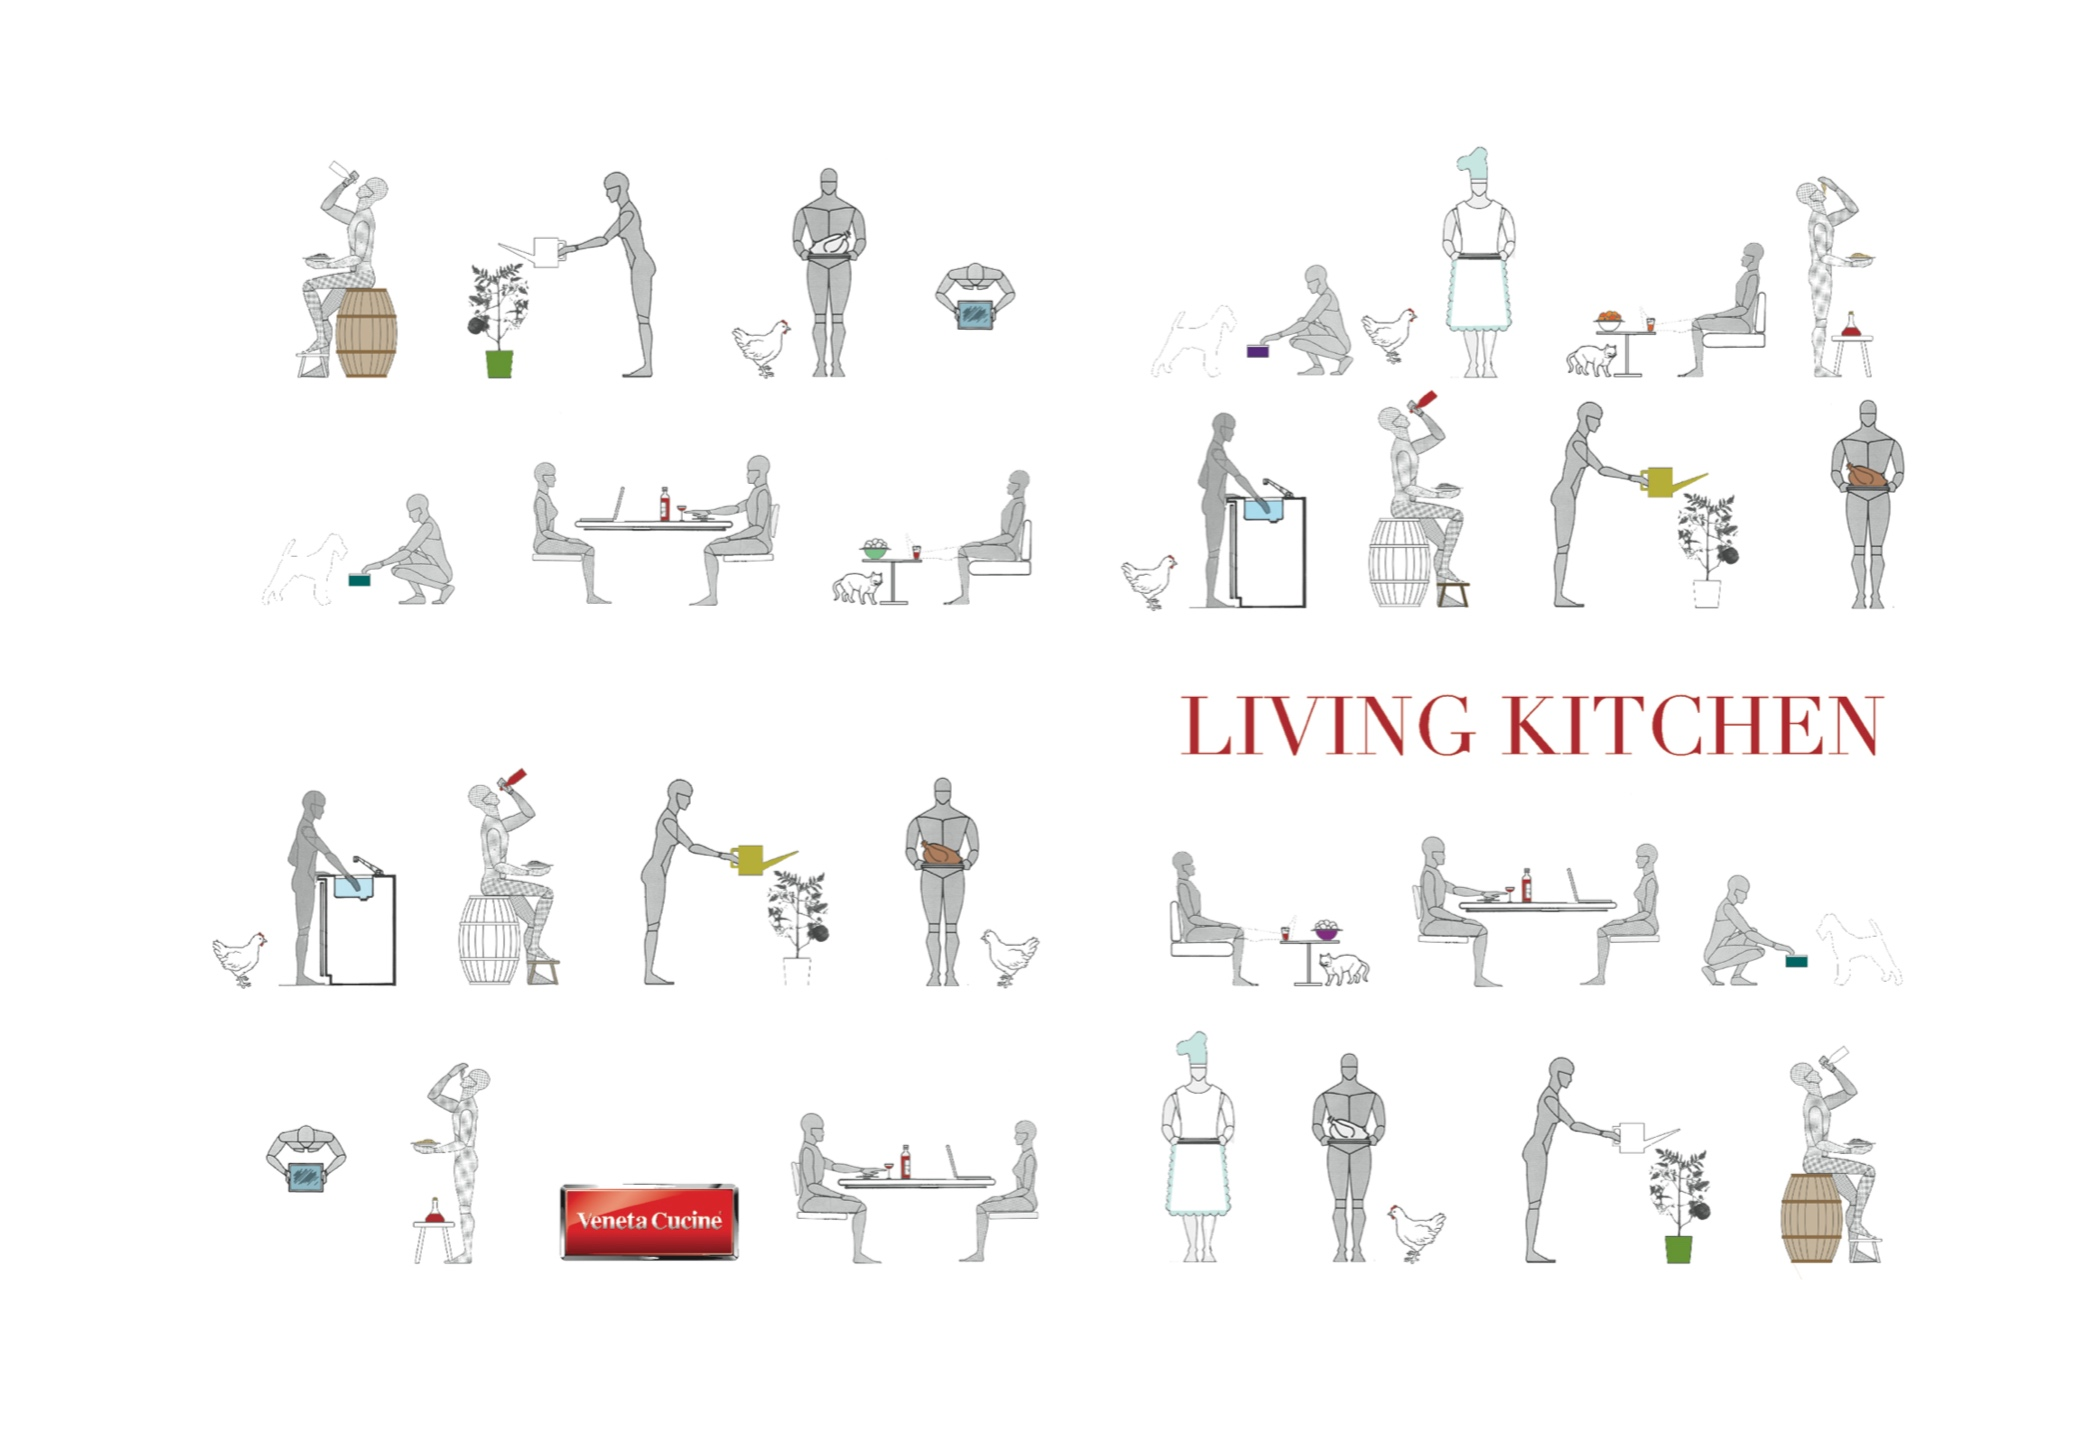 living kitchen.jpg